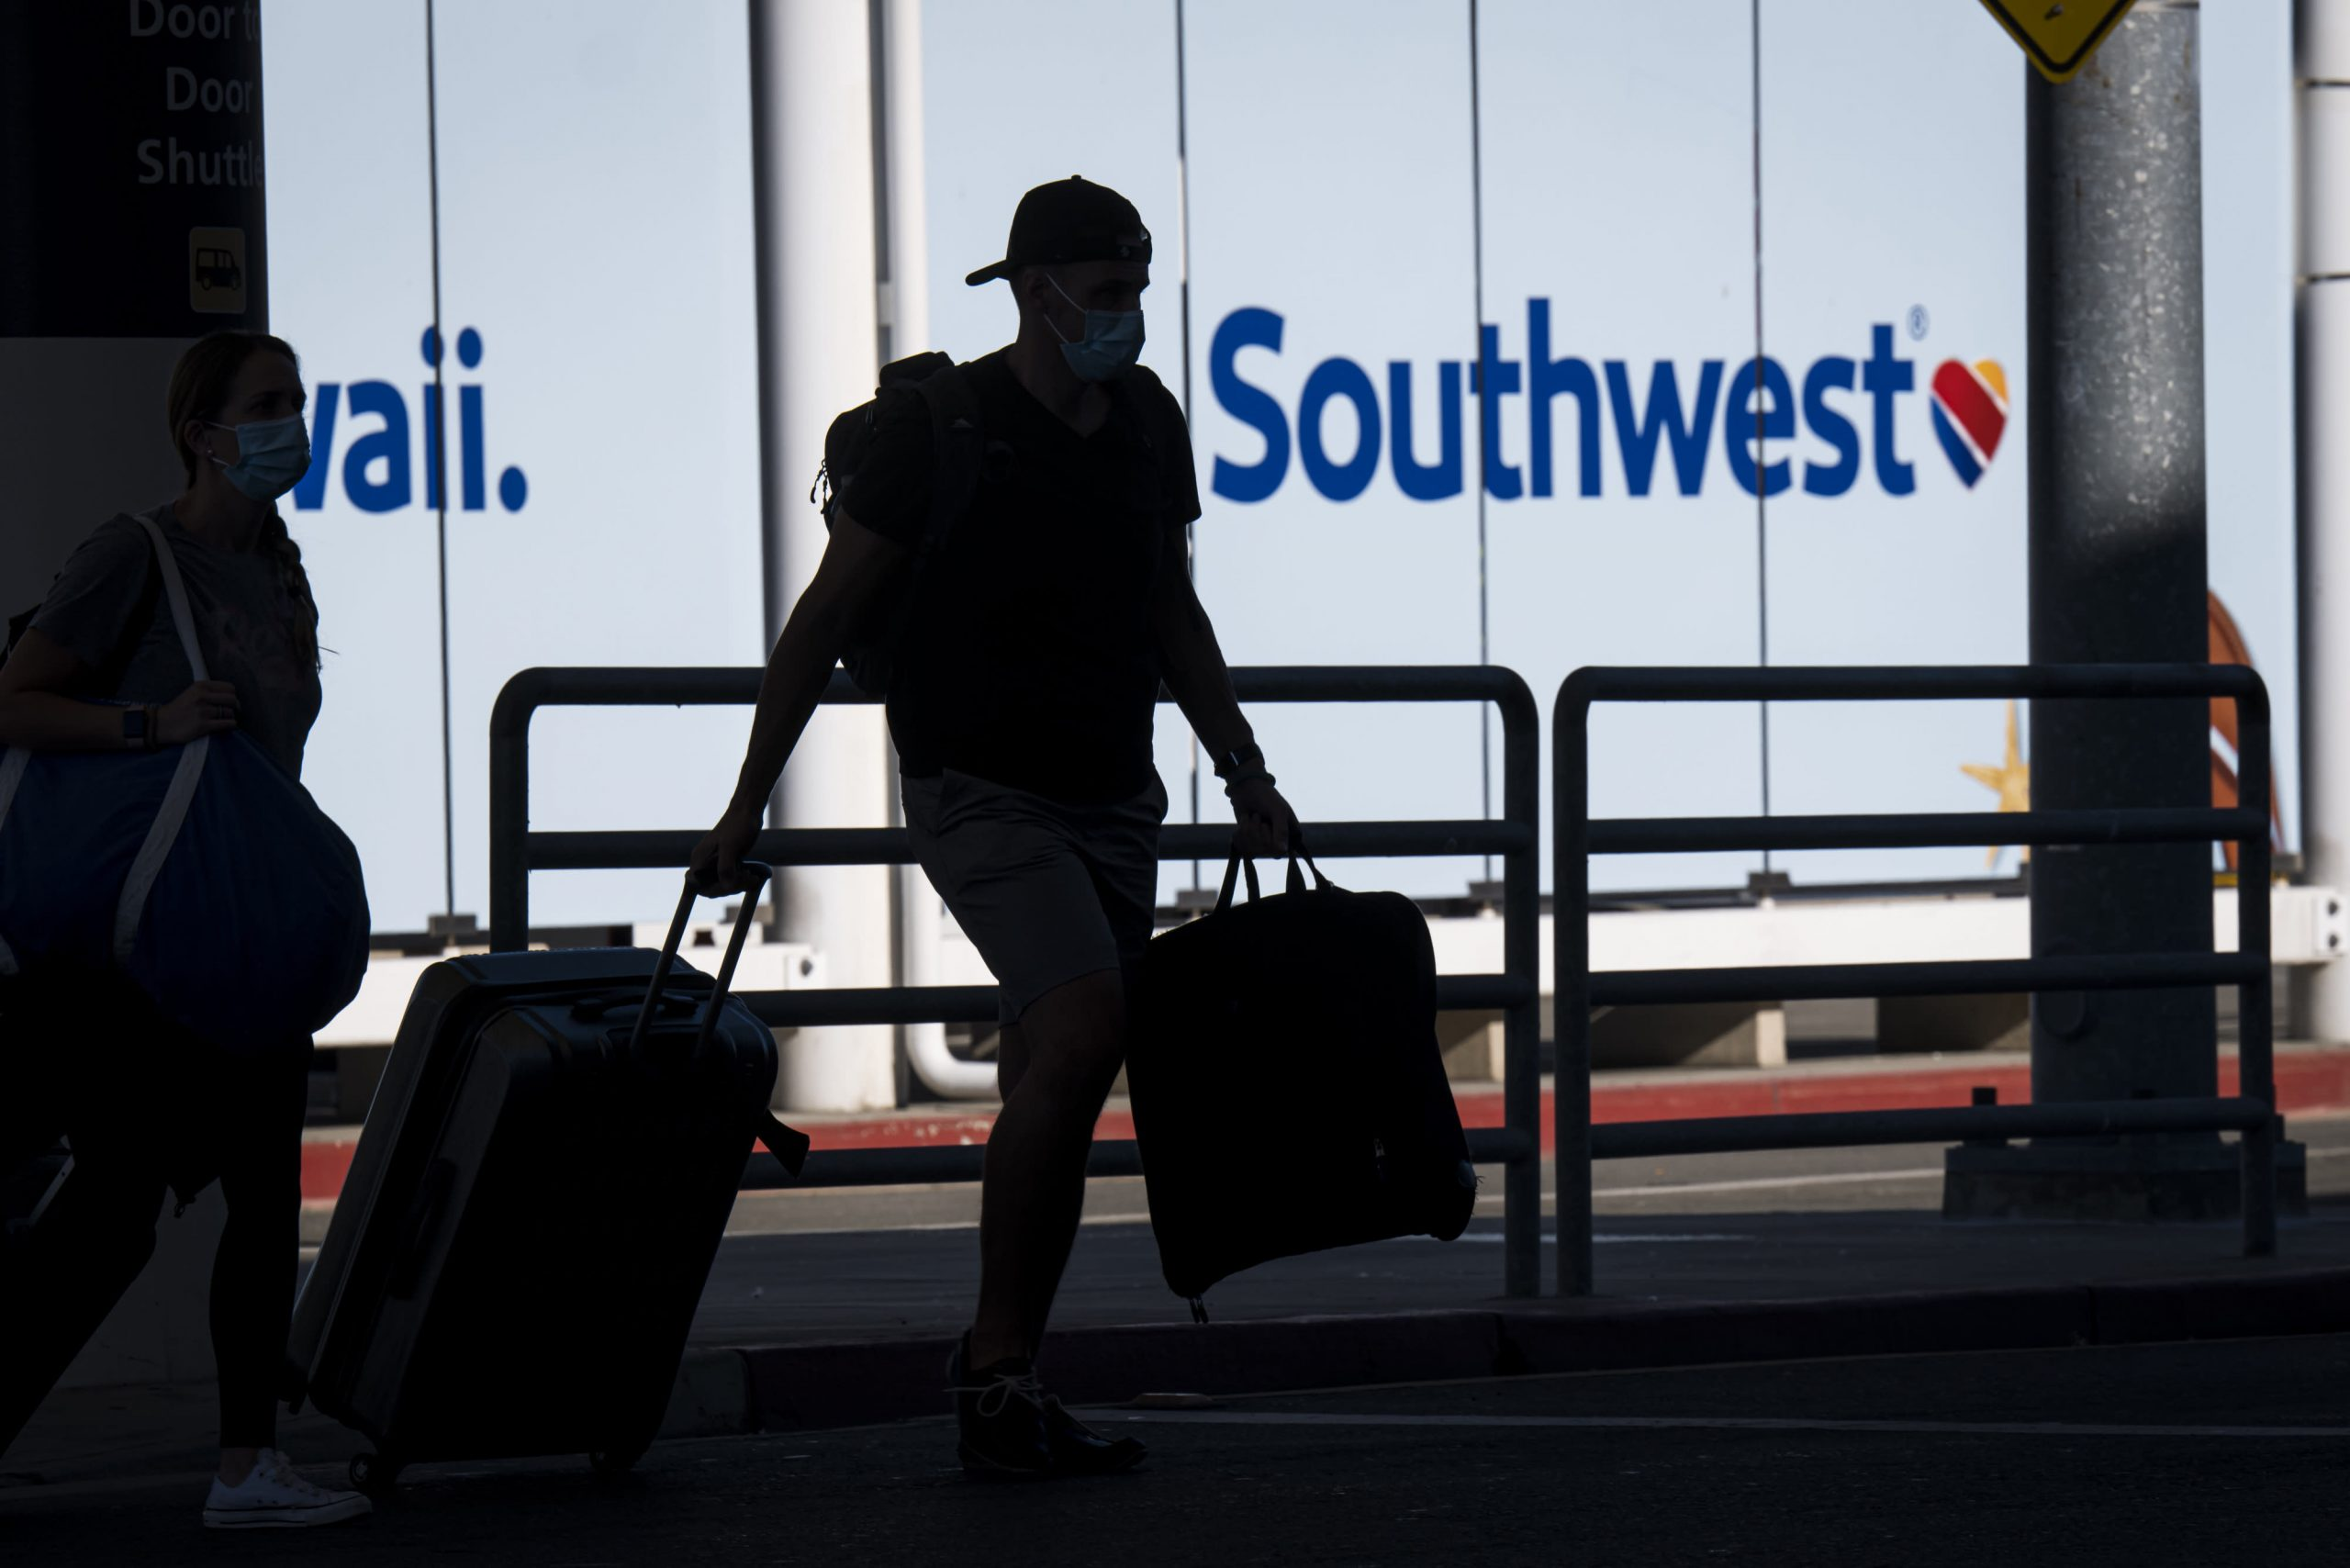 Southwest Airlines warns it could furlough 6,800 employees to cut costs